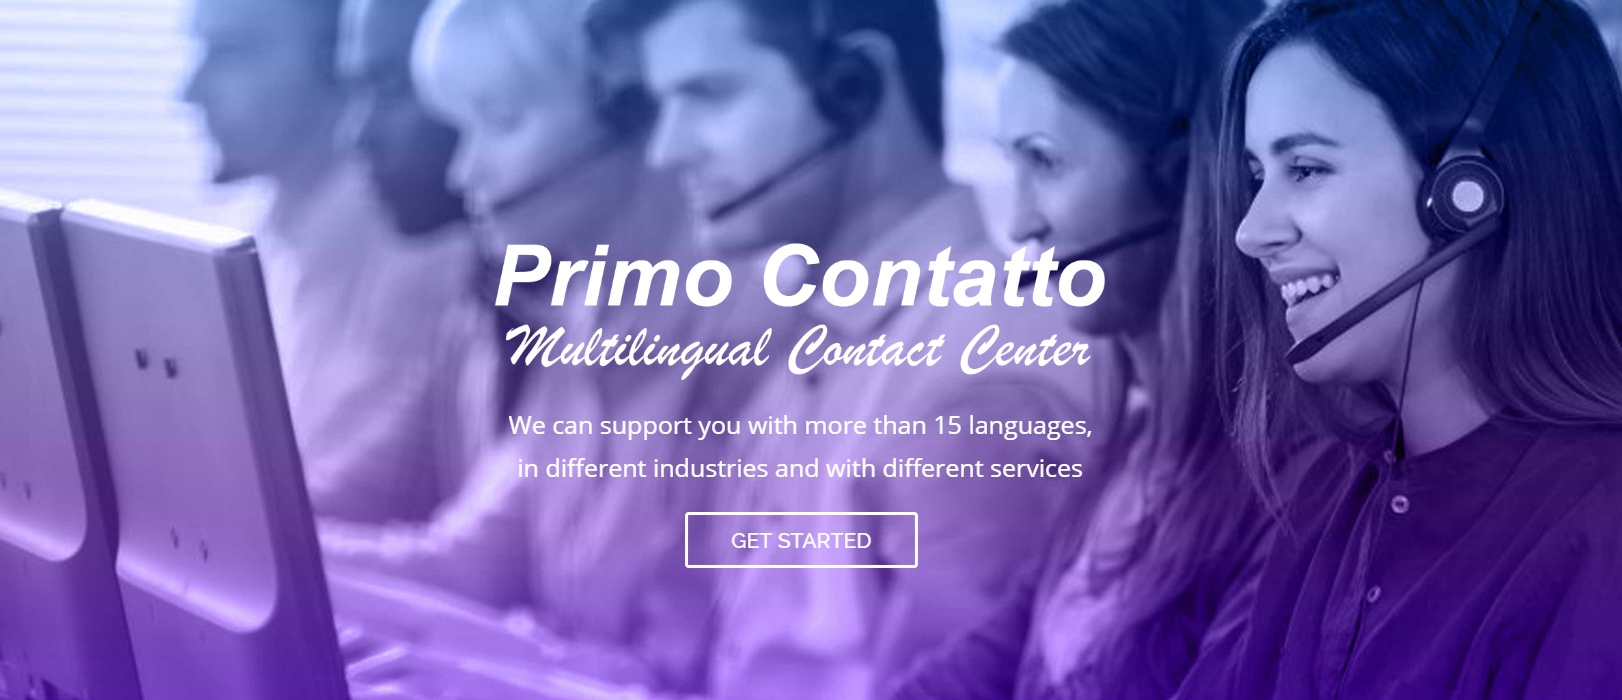 primocontatto-multilingual-outsourcing-center-service-translation-icon